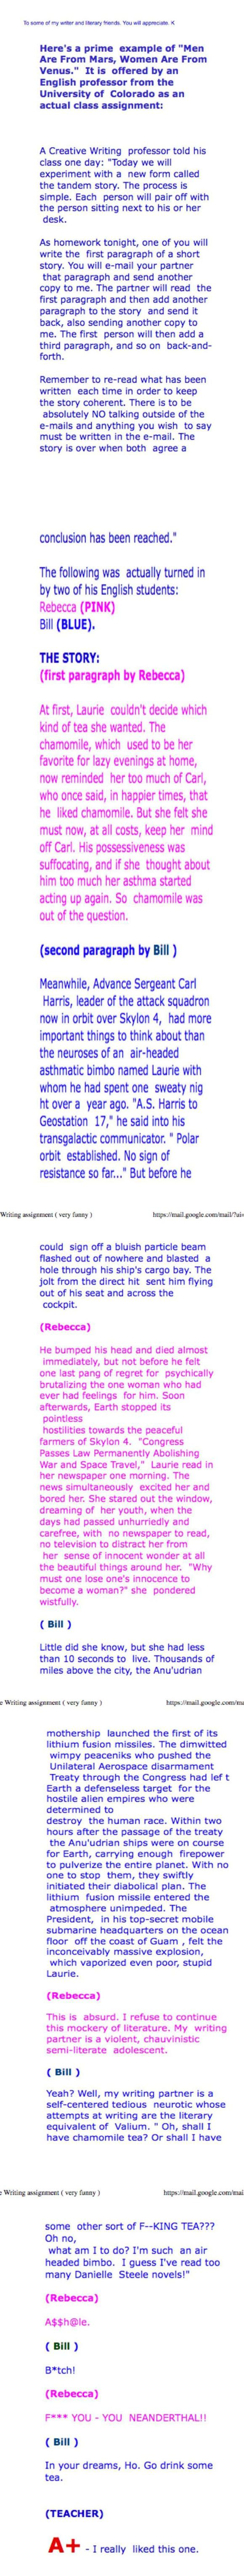 Creative Writing Assignment at Kontraband, I'm still laughing:)